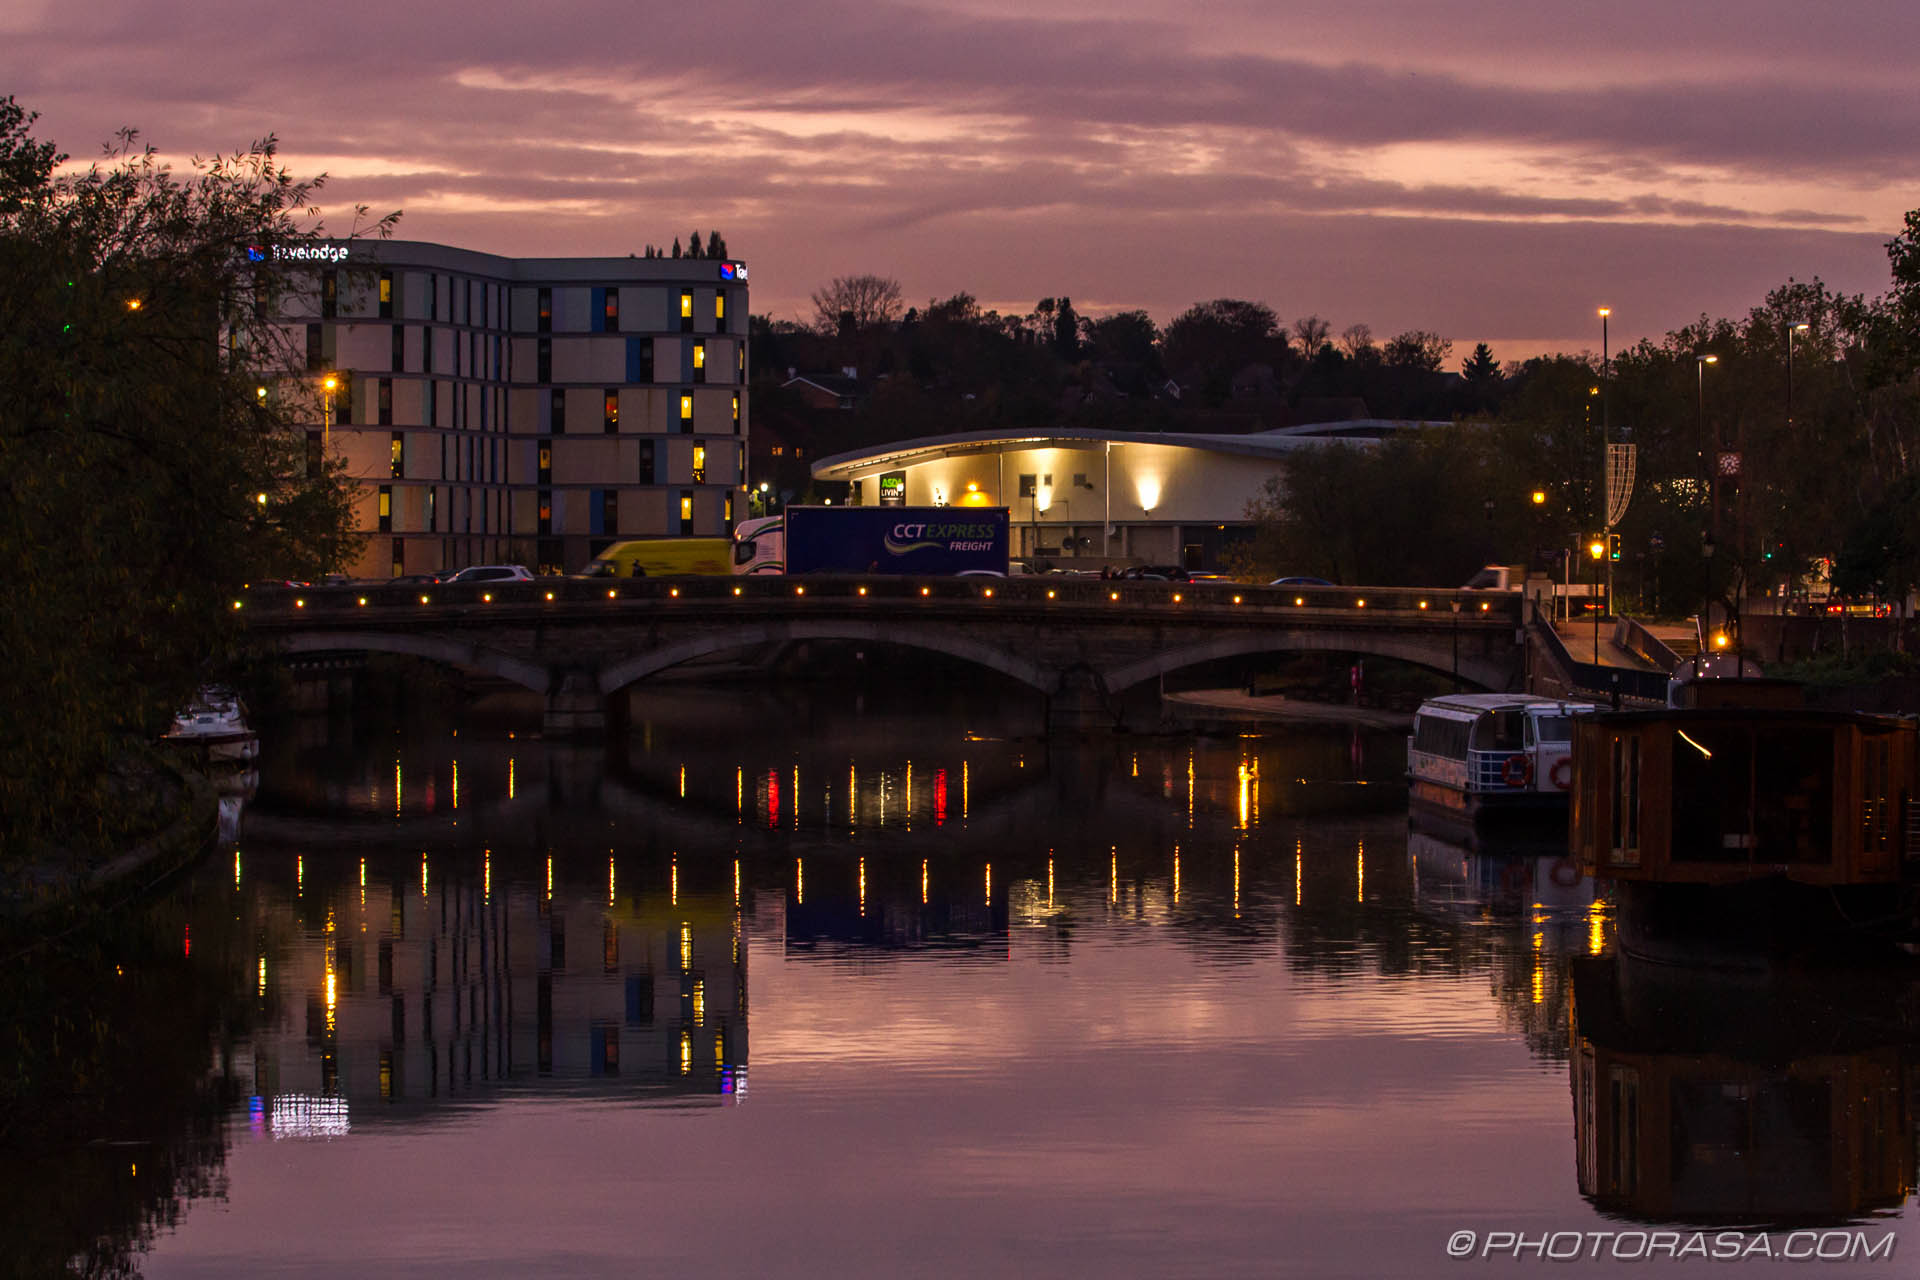 http://photorasa.com/red-sky-night/early-evening-maidstone-bridge-lights/